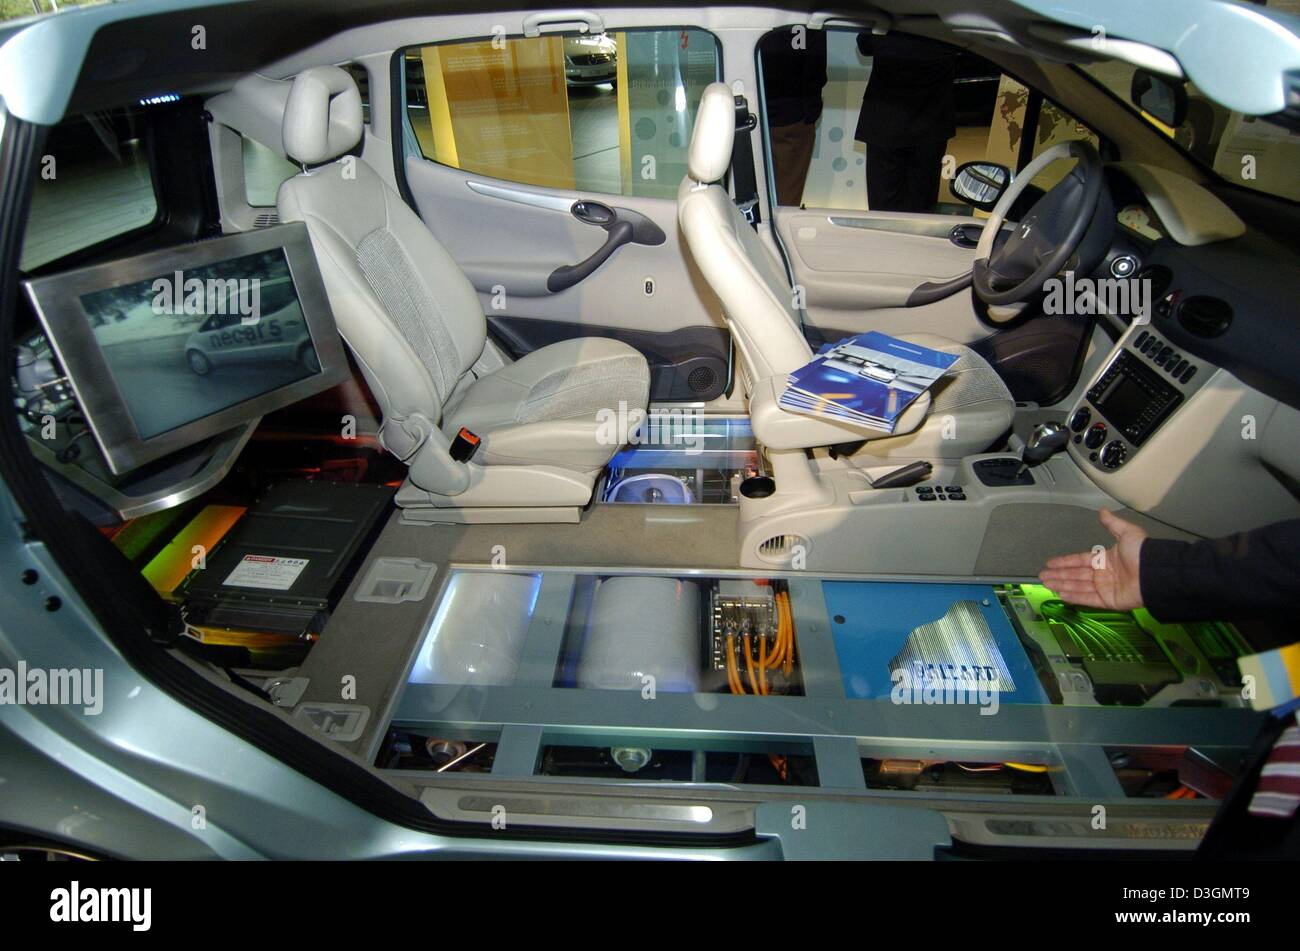 (dpa) - A DaimlerChrysler employee presents the interior of a fuel cell powered 'F-Cell' car which stands - Stock Image